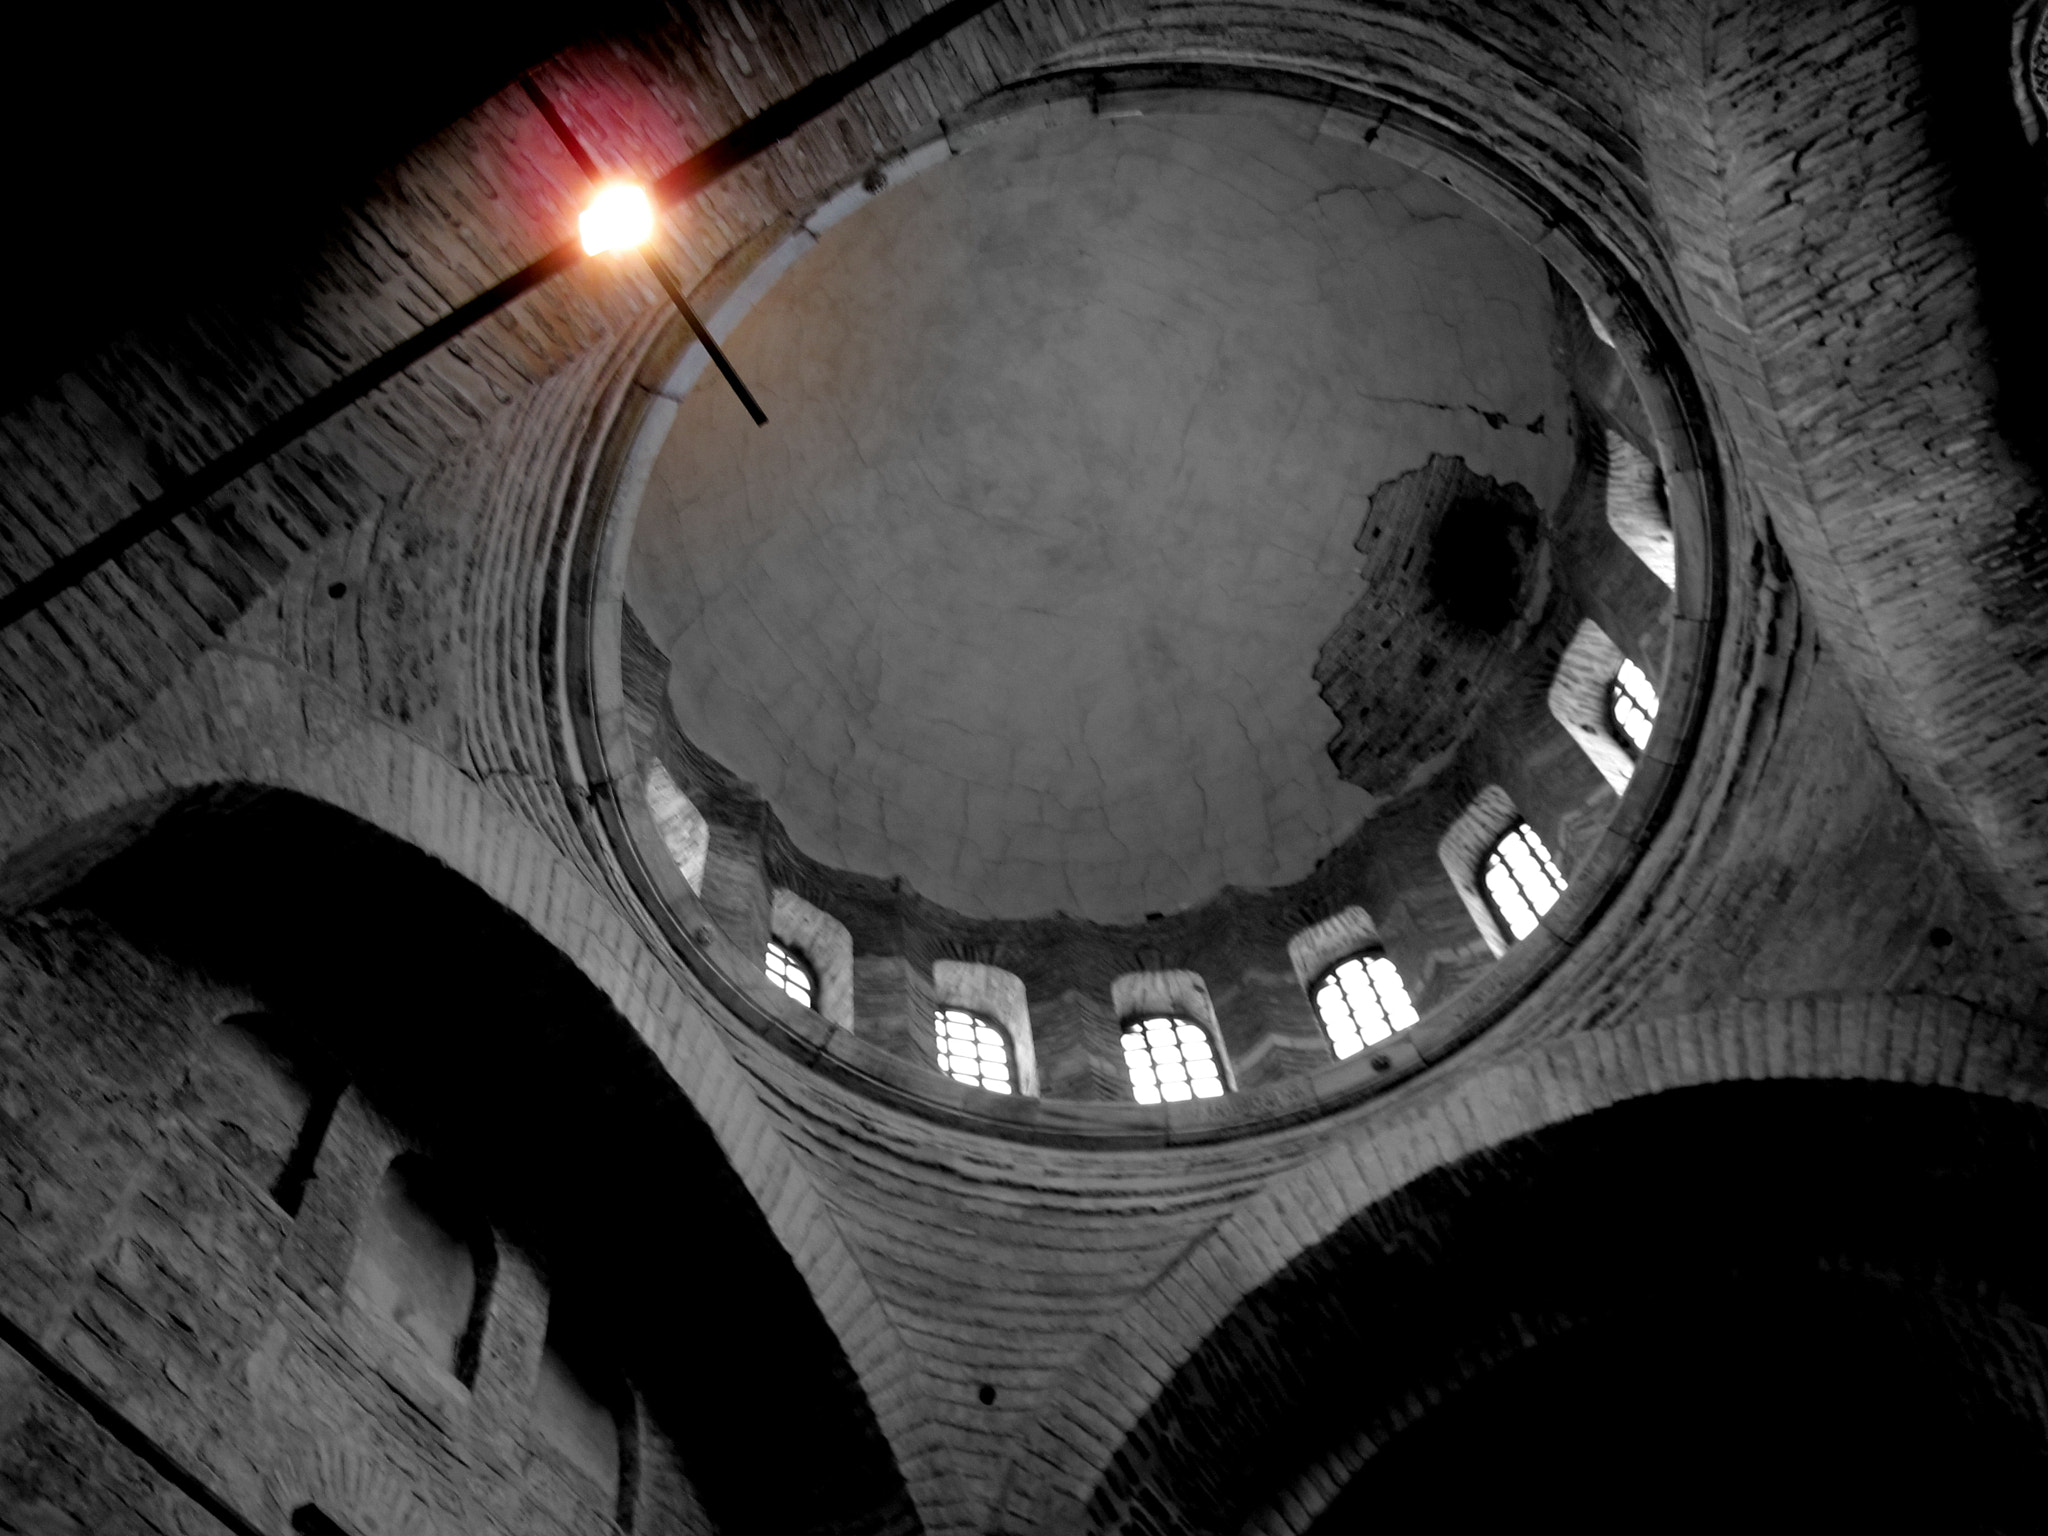 Photograph A simple ceiling by Kaya Energin on 500px